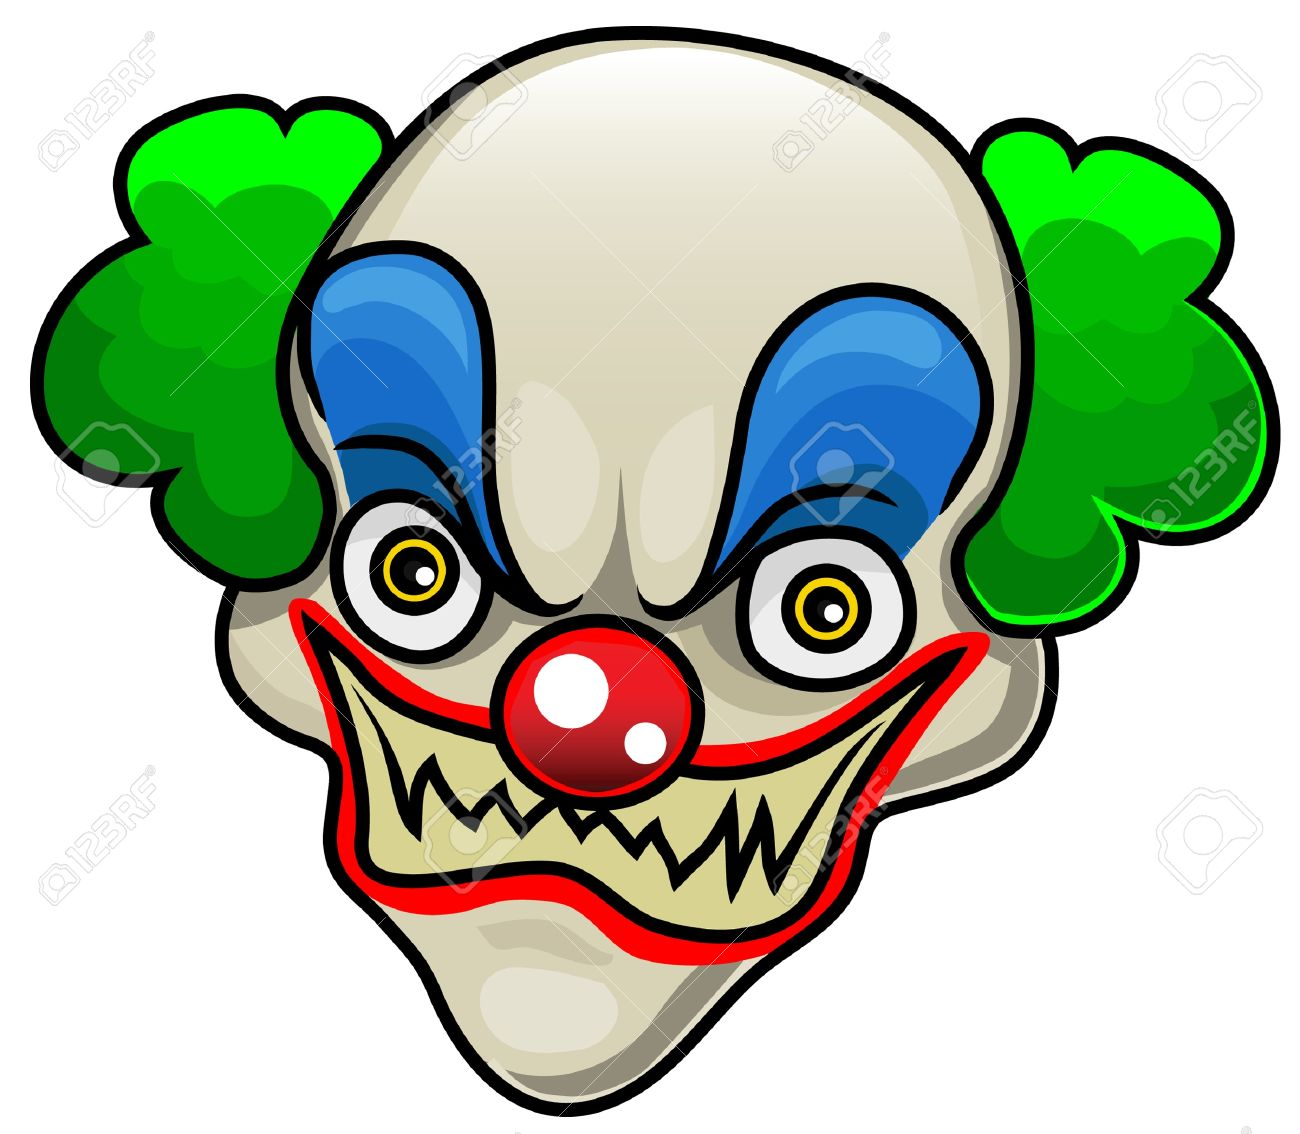 Scary Face Clipart Scary Face a Very Detailed